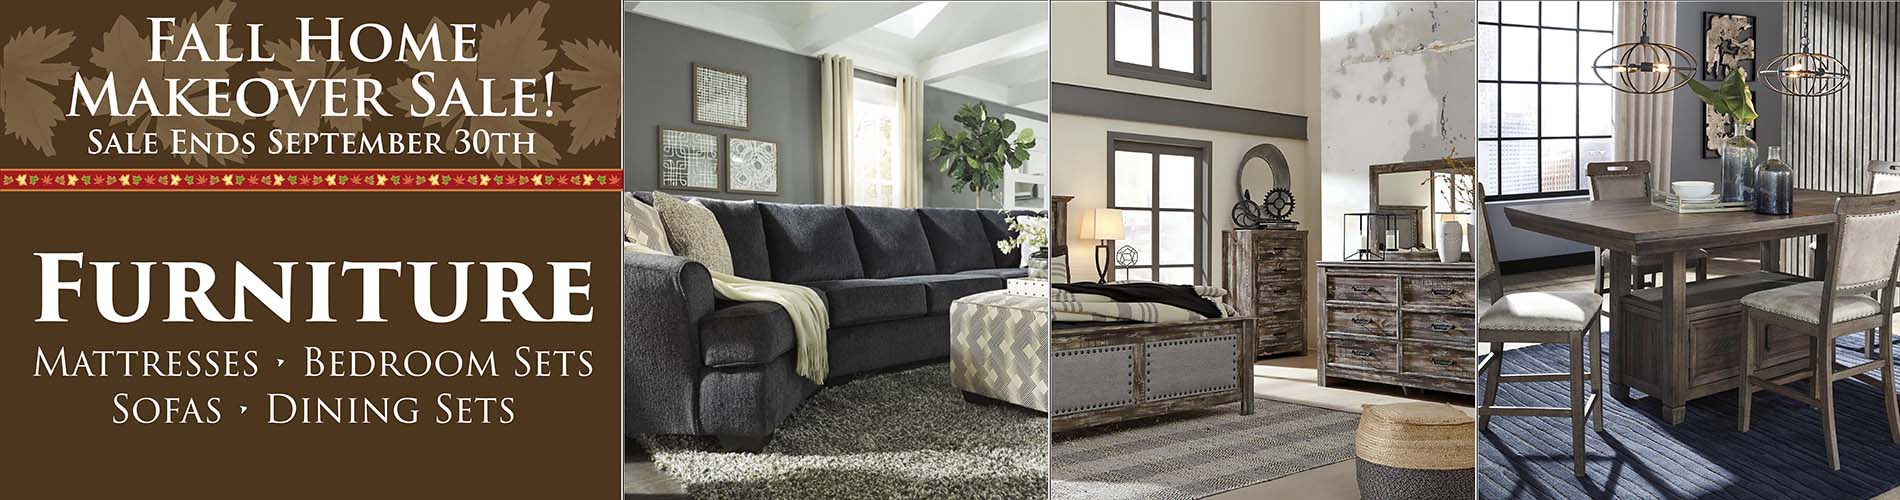 Fall Home Makeover Sale going on now at Neve's Floors To Go & Mattress Gallery!  Hurry in, sale ends September 30, 2020!